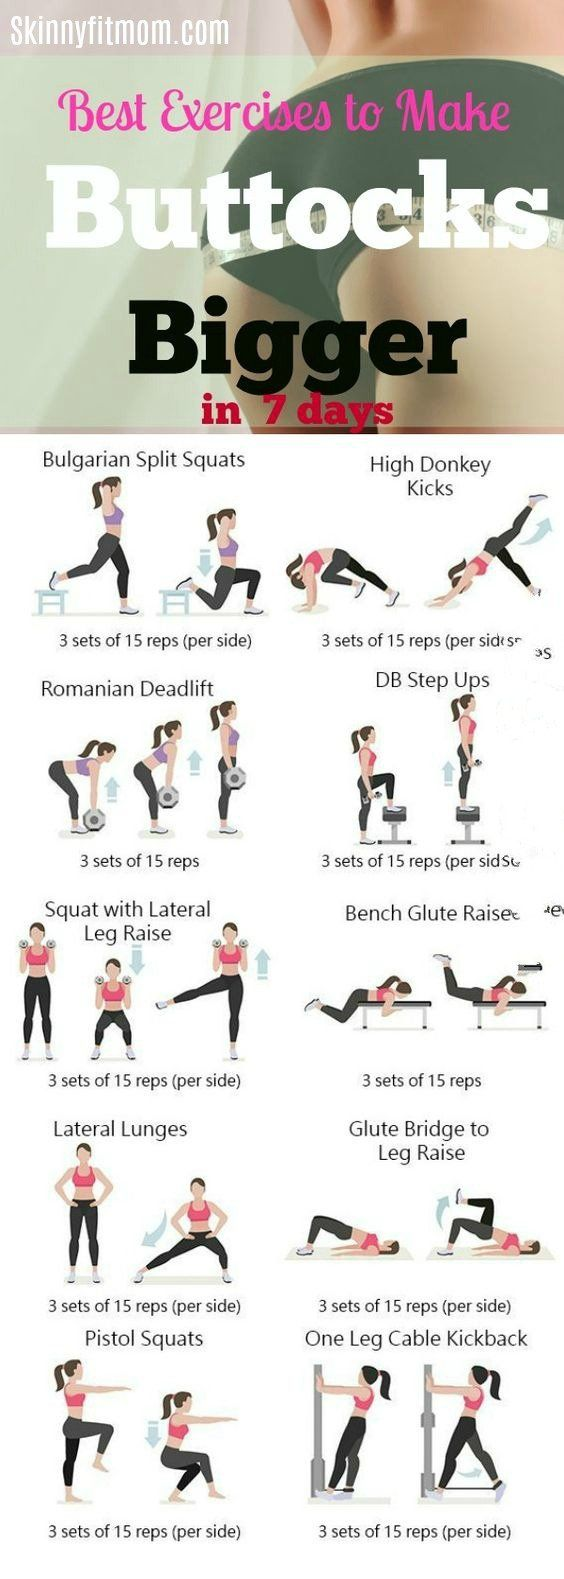 Workout to make butt bigger images 411